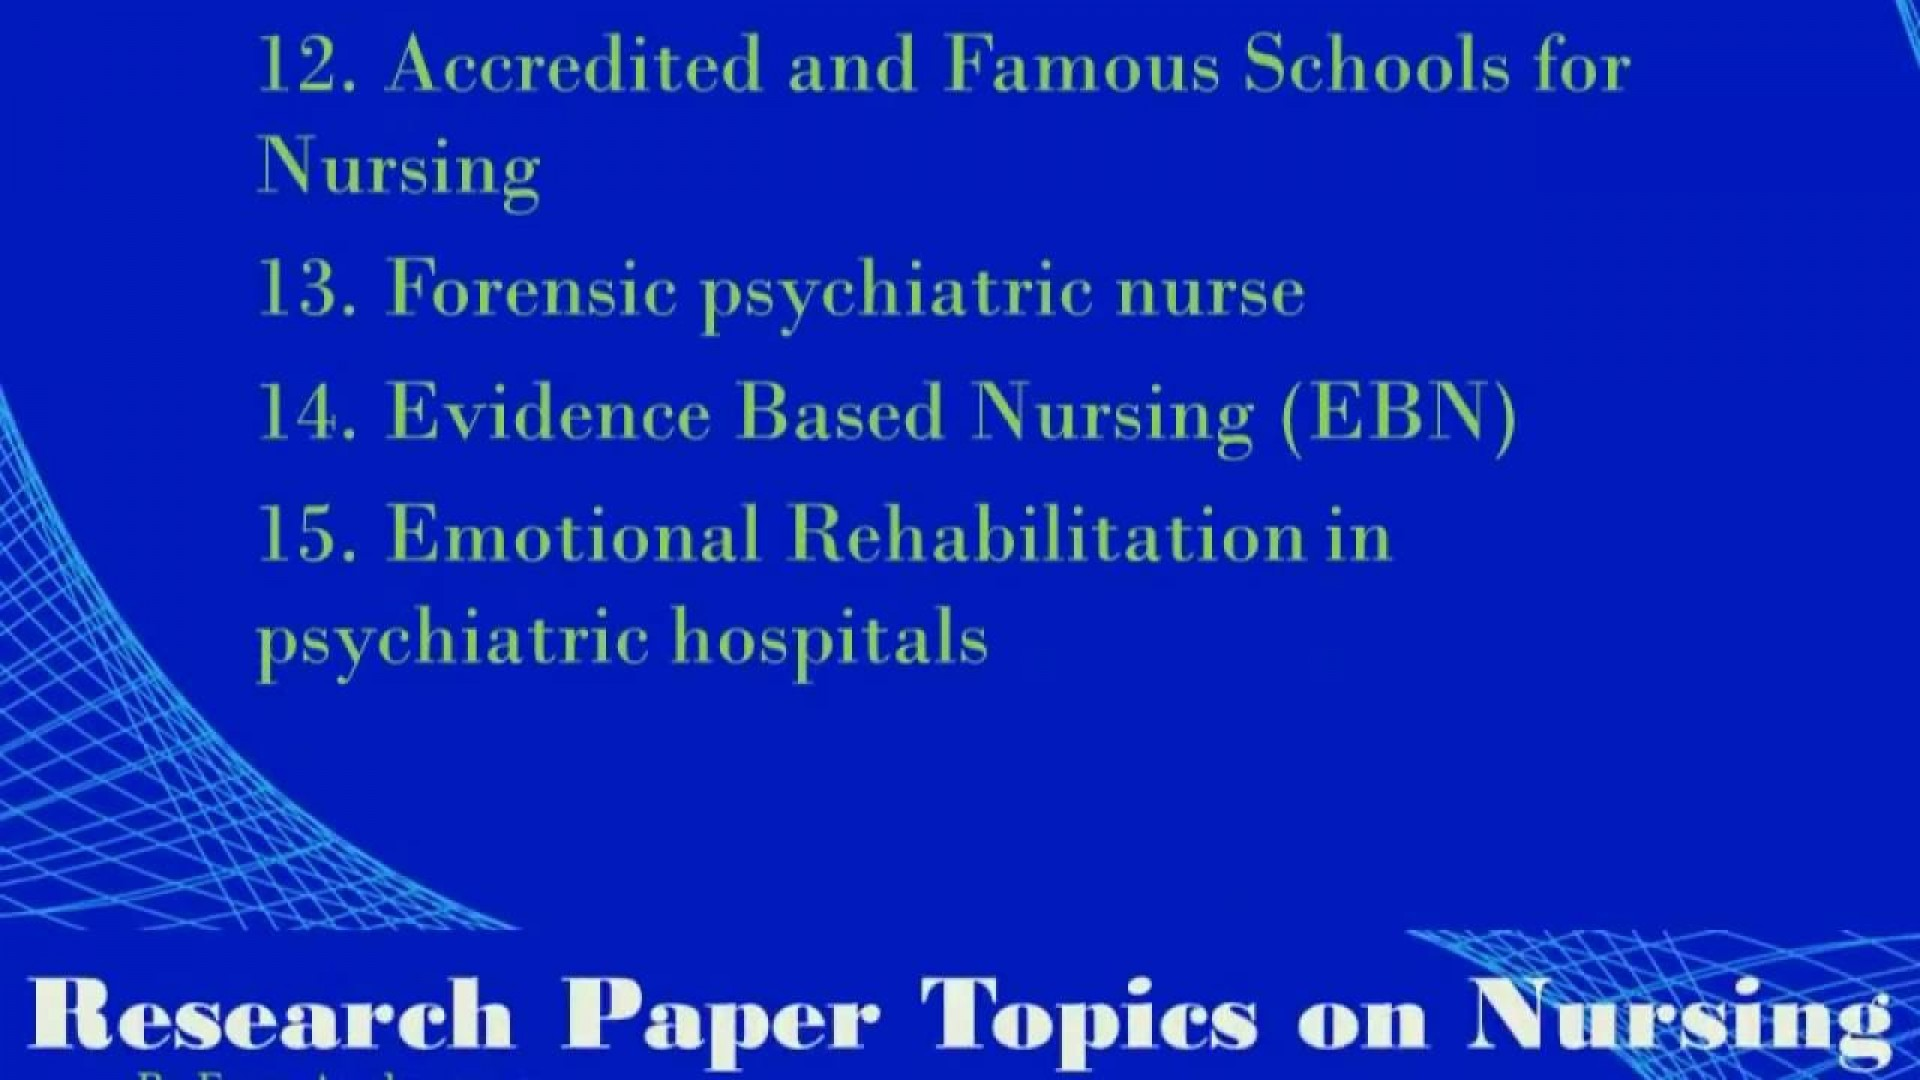 002 Maxresdefault Research Paper Topics Unforgettable Nursing Easy Neonatal Pediatric 1920